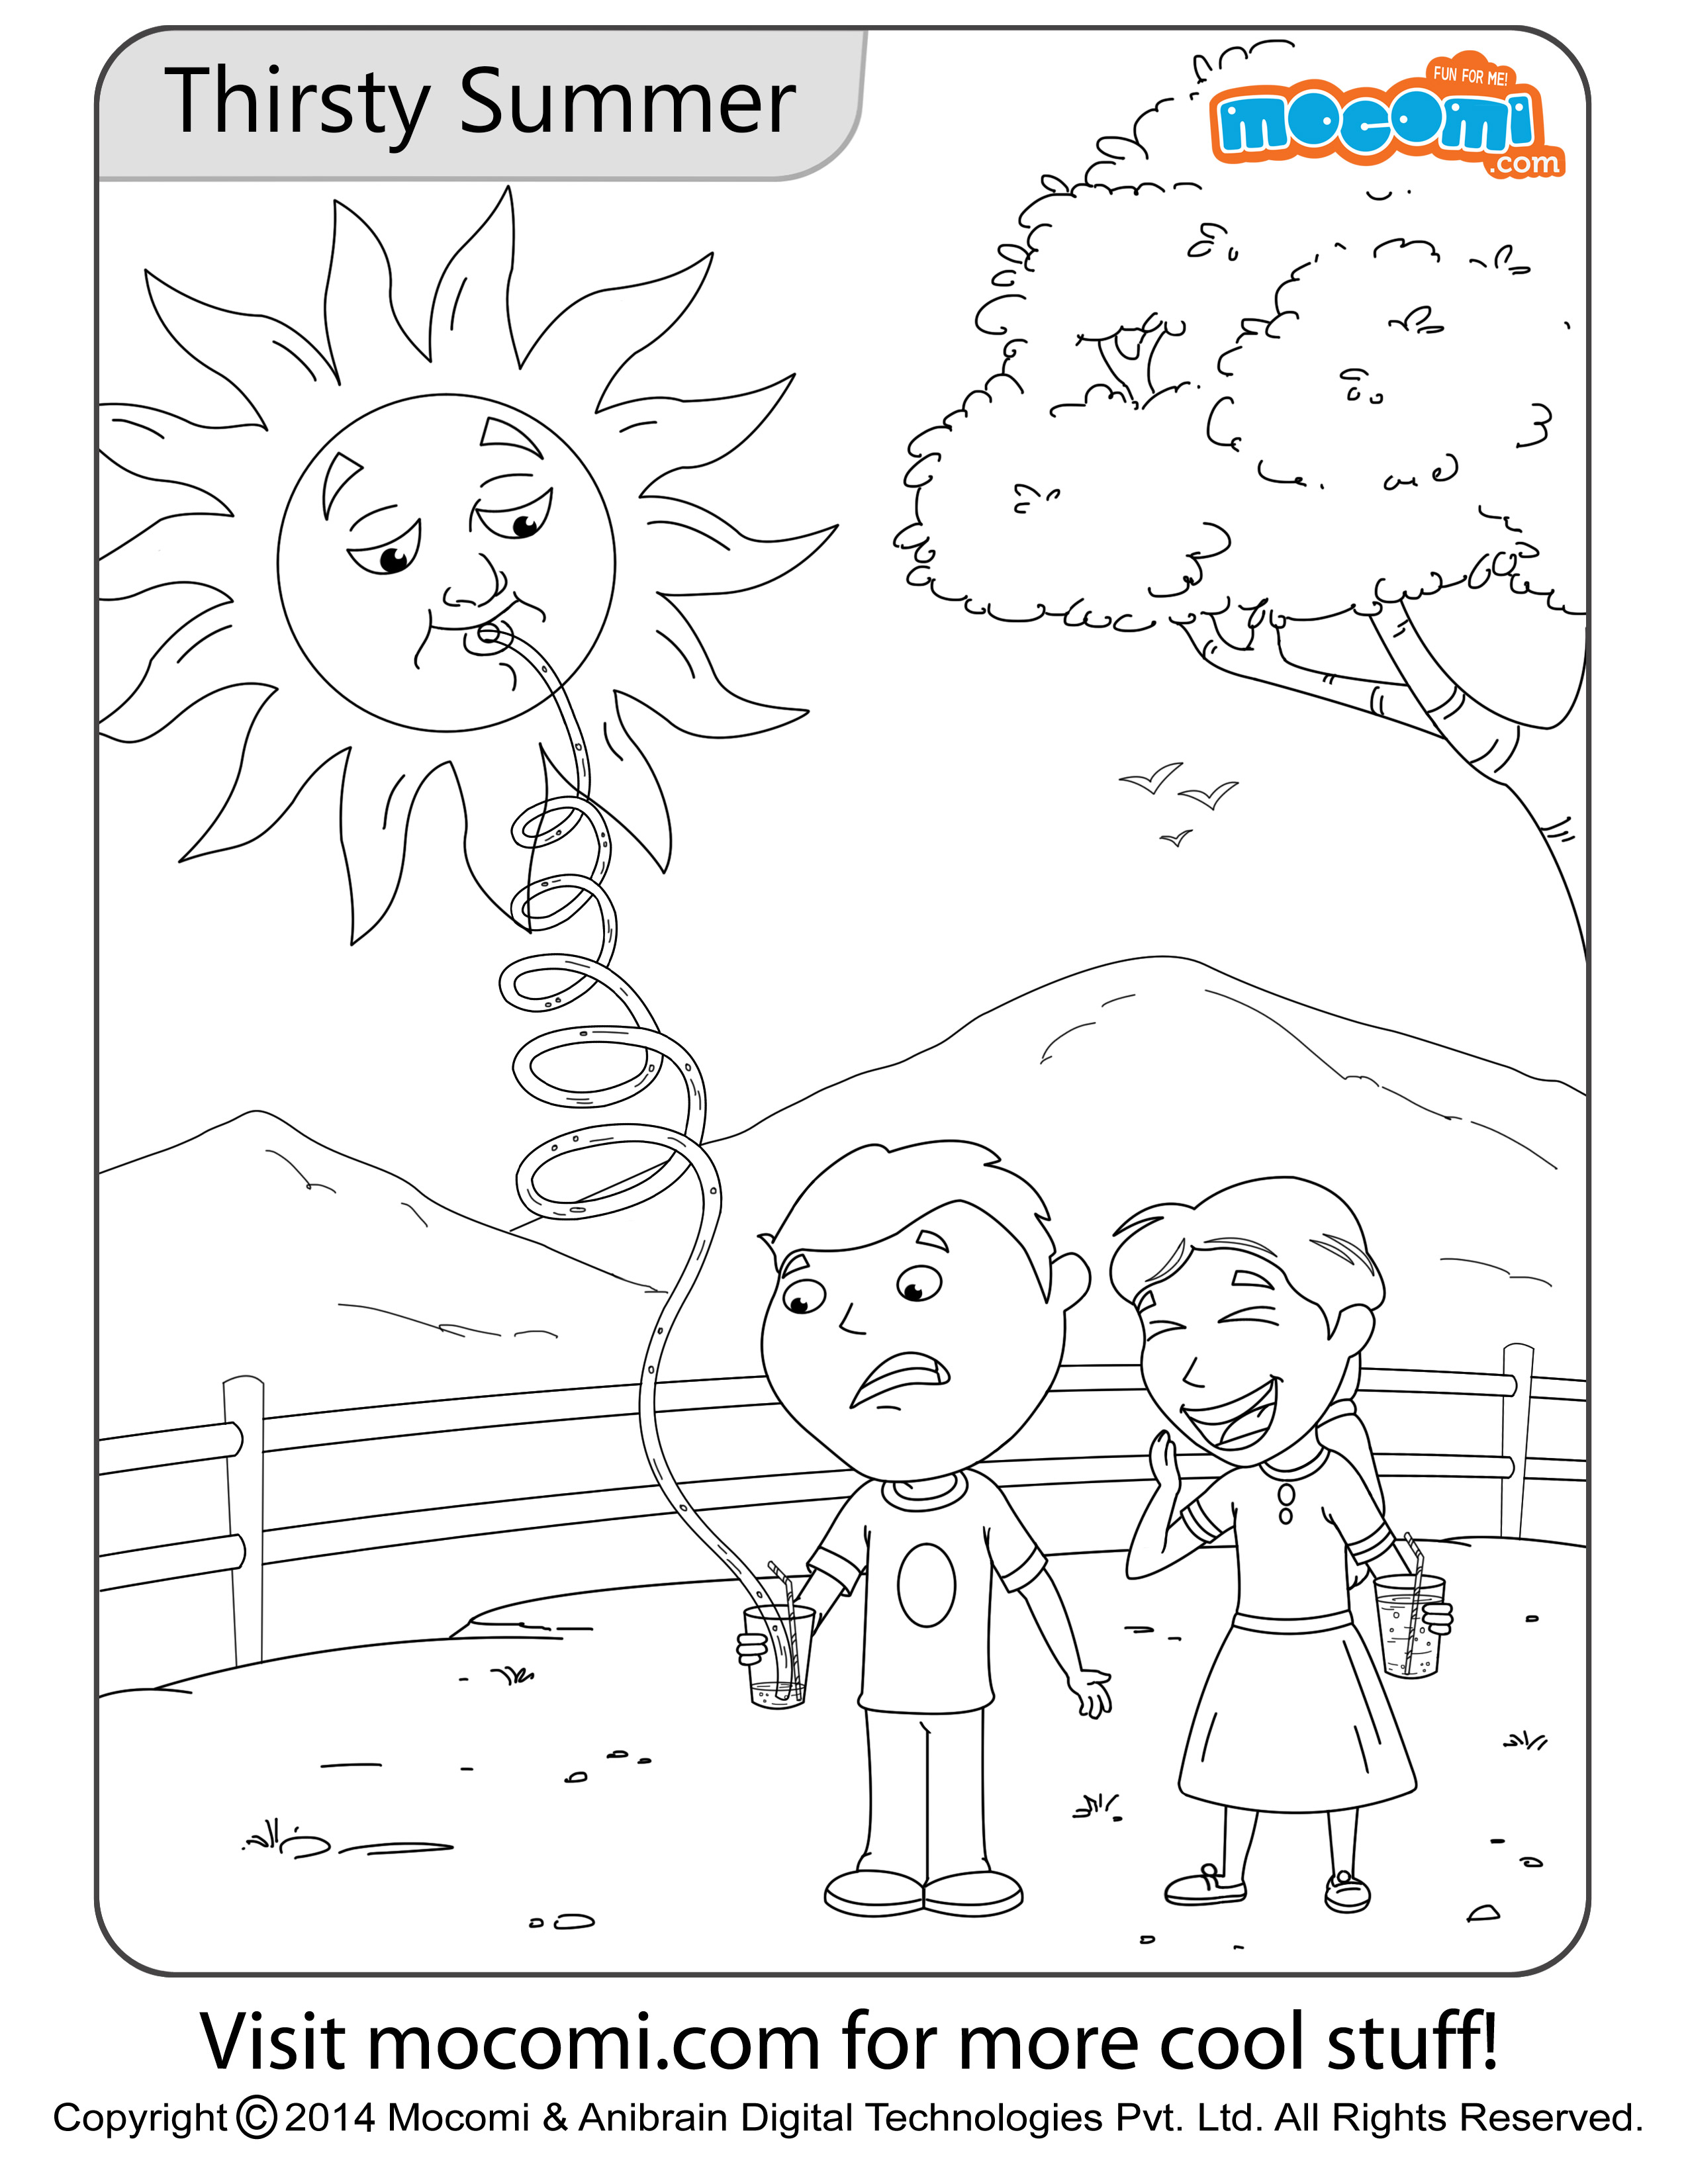 Thirsty Summer Colouring Page